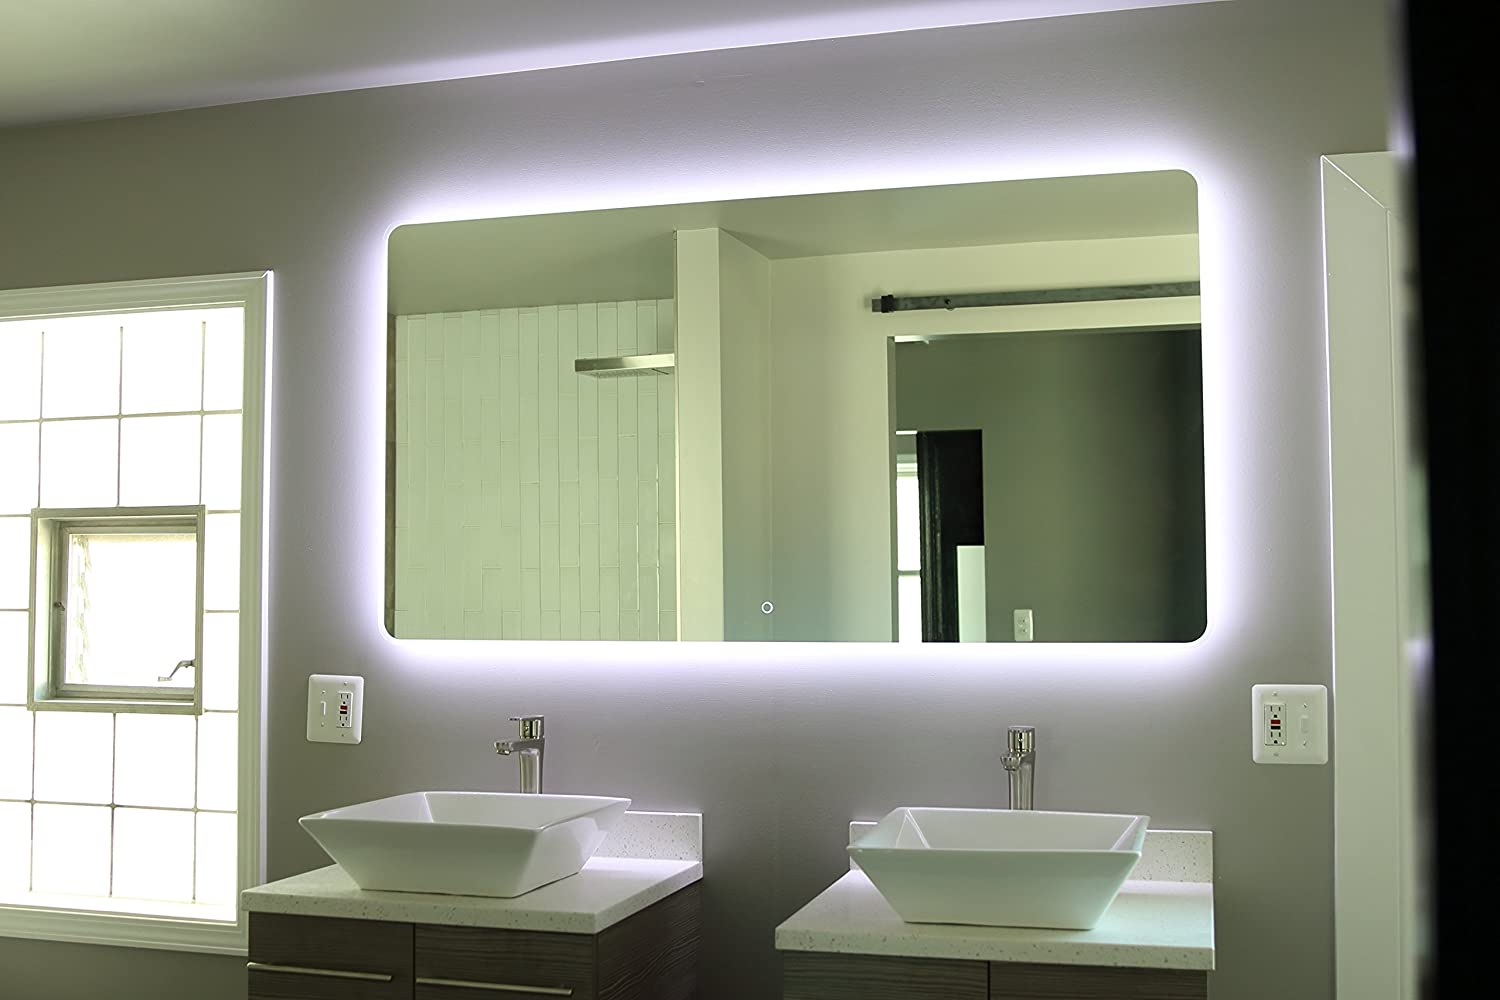 Amazon windbay backlit led light bathroom vanity sink mirror amazon windbay backlit led light bathroom vanity sink mirror illuminated mirror 36 home kitchen aloadofball Images